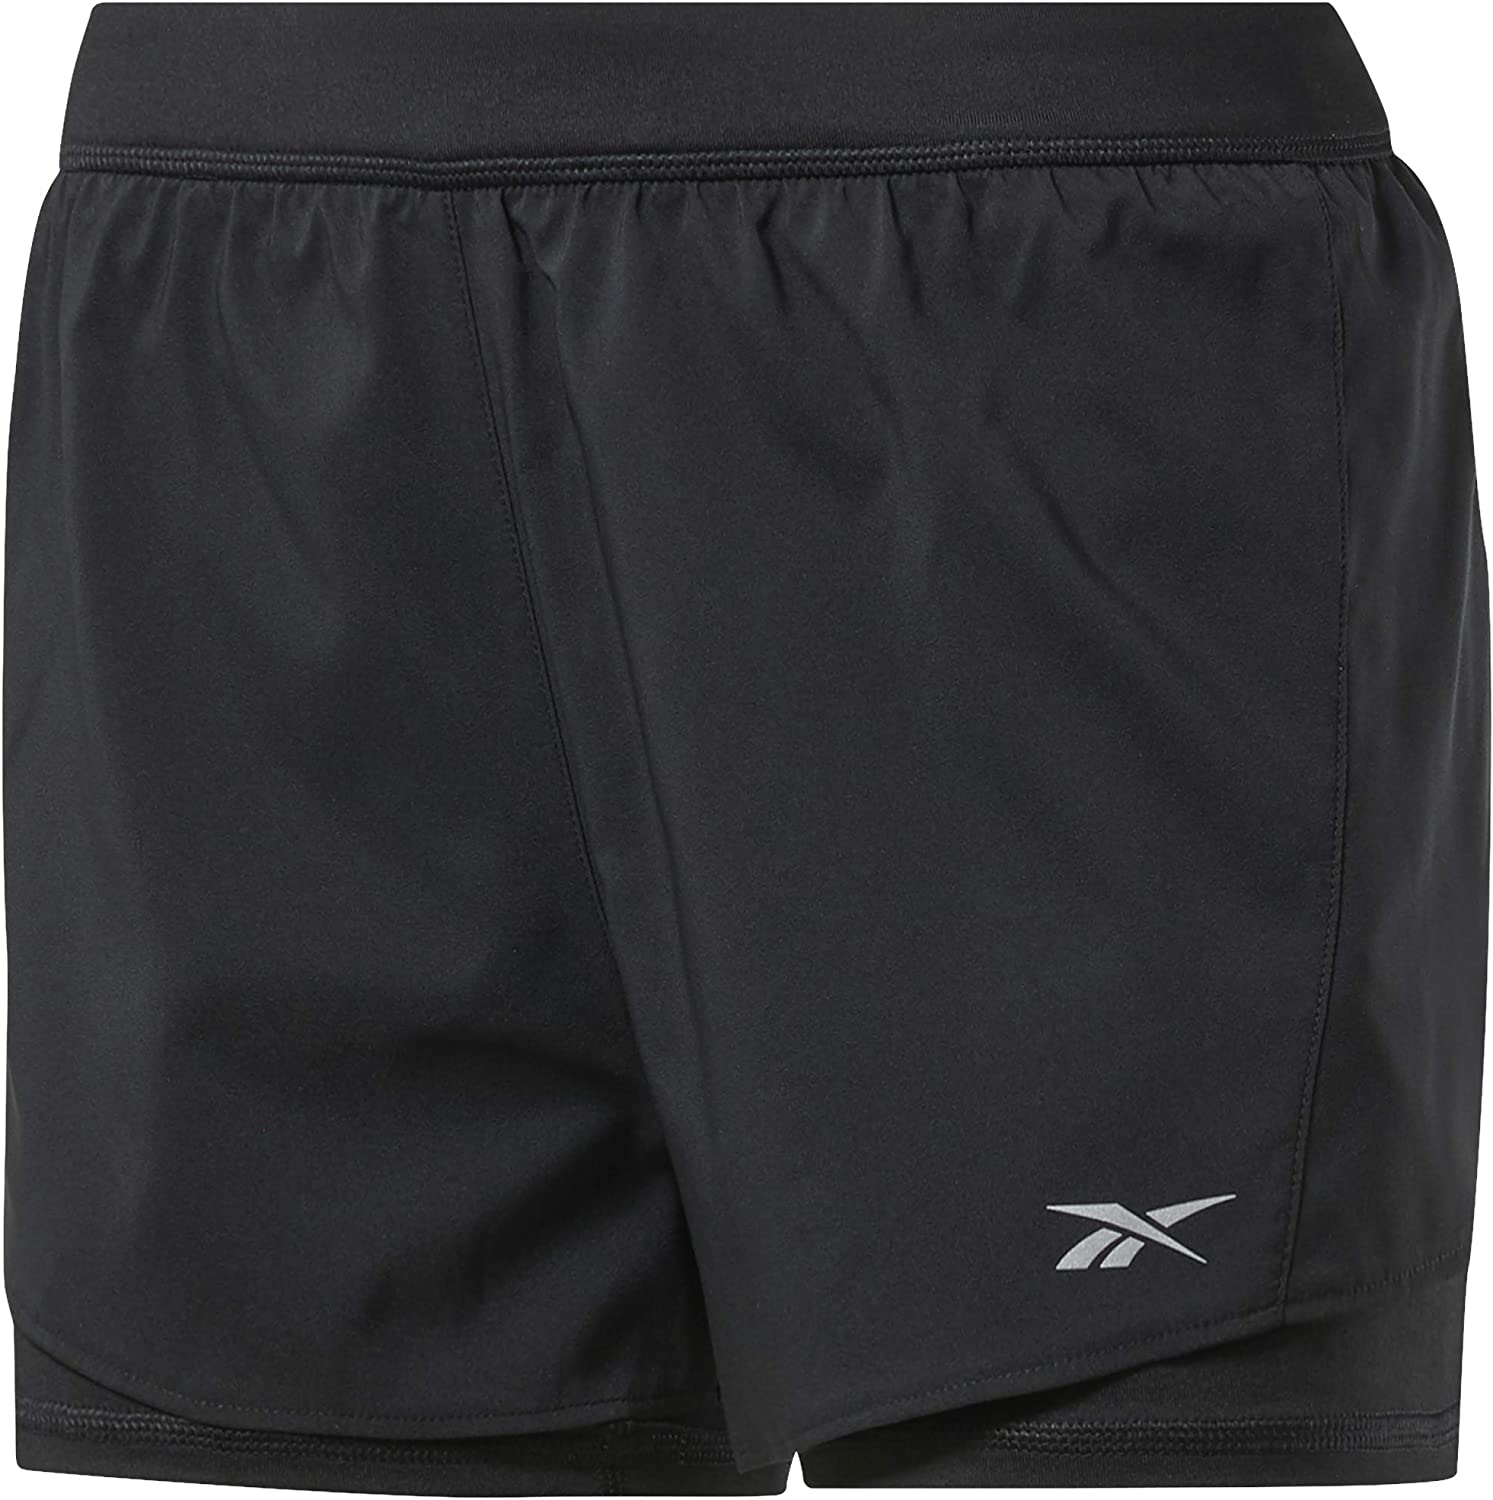 Reebok Women's Running OFFicial mail order 2-in-1 Short Be super welcome